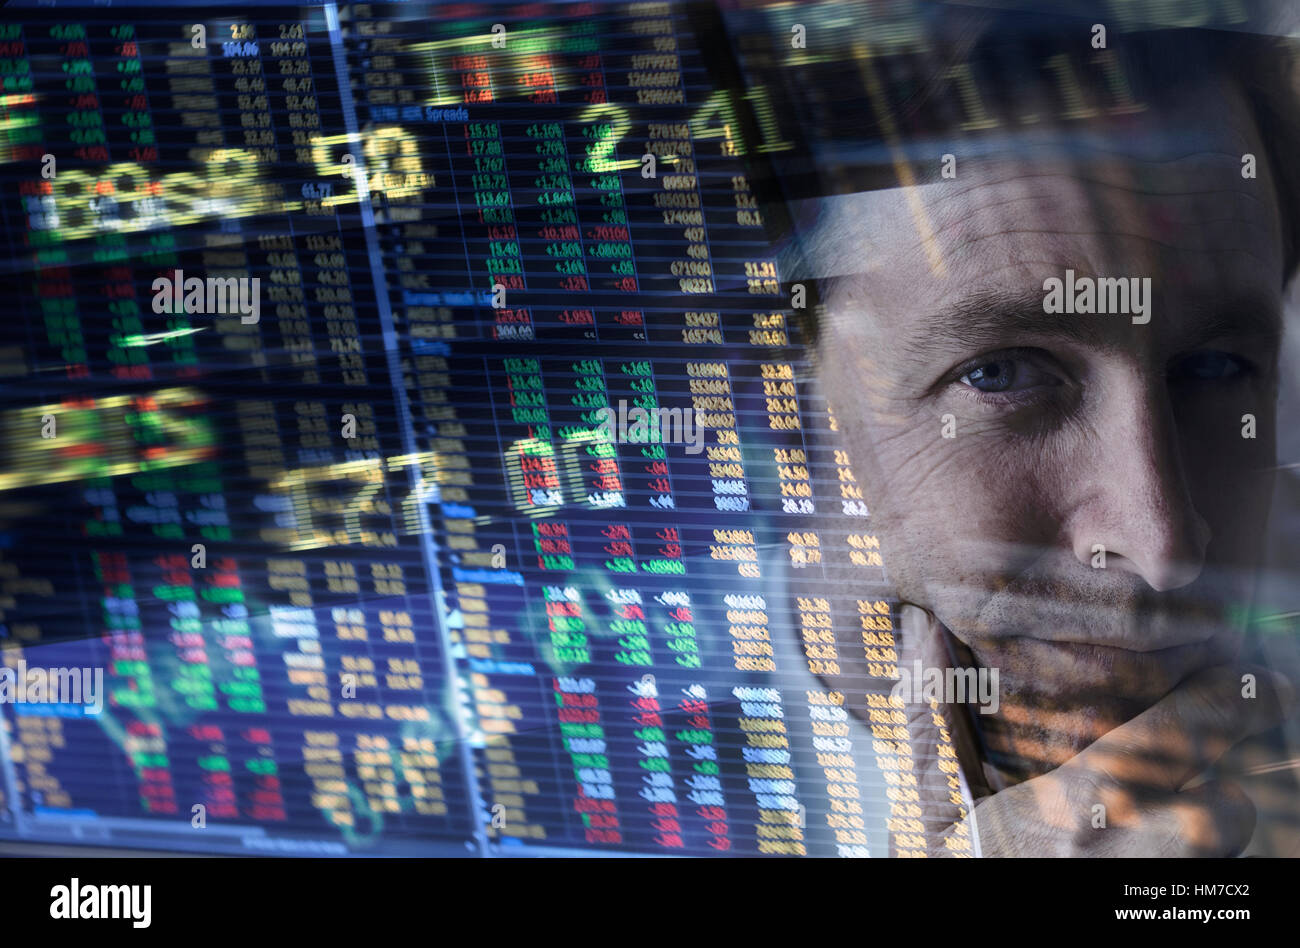 Face of mature man among stock exchange charts and numbers - Stock Image